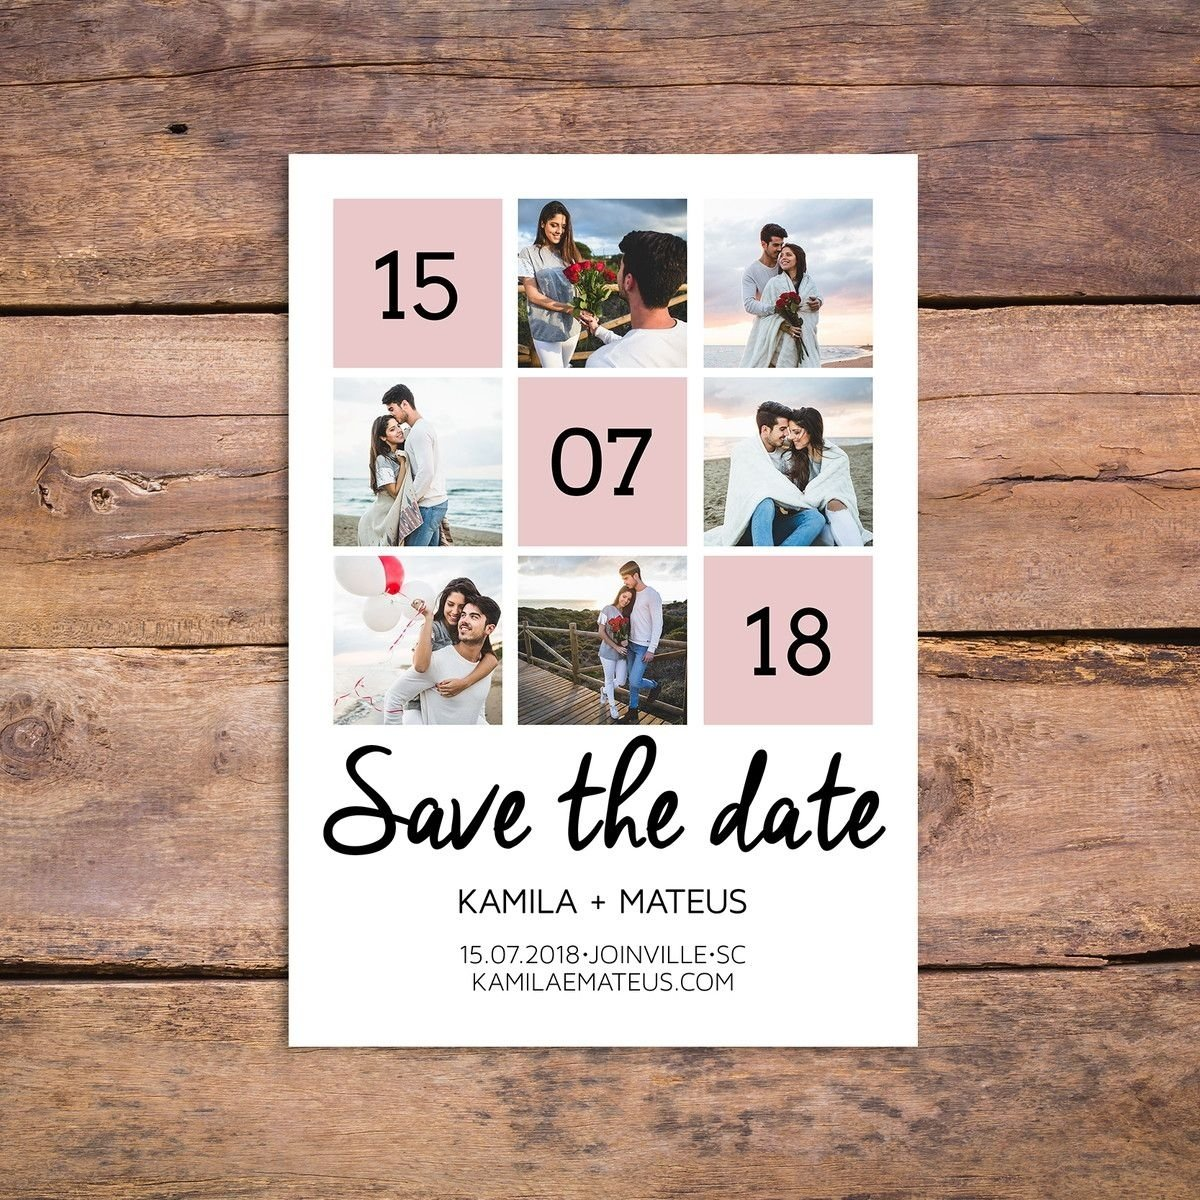 10 Most Popular Wedding Save The Dates Ideas 25 diy save the dates ideas to remember the most historic events of 3 2020